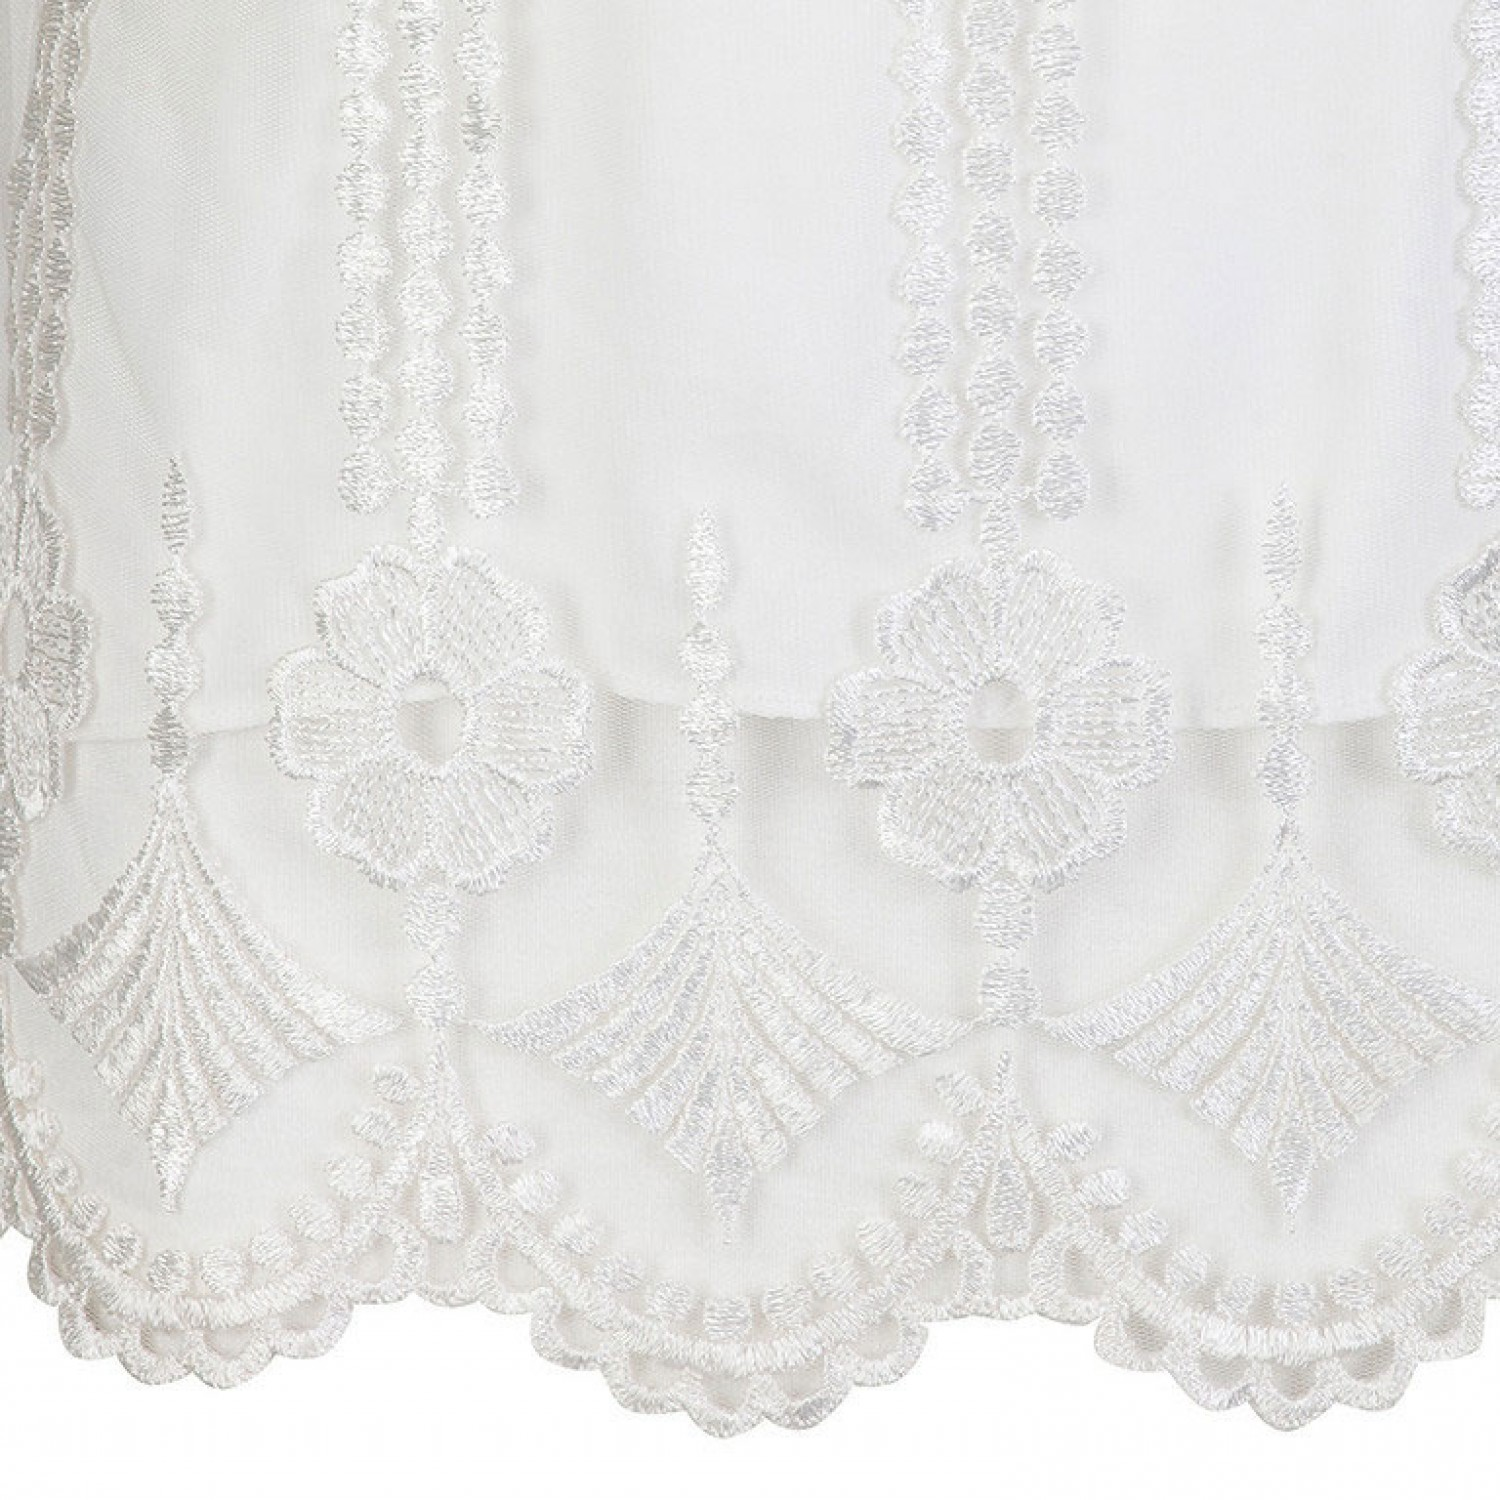 41af1534000304 Sleeveless White Embroidered Lace Top; Sleeveless White Embroidered Lace Top